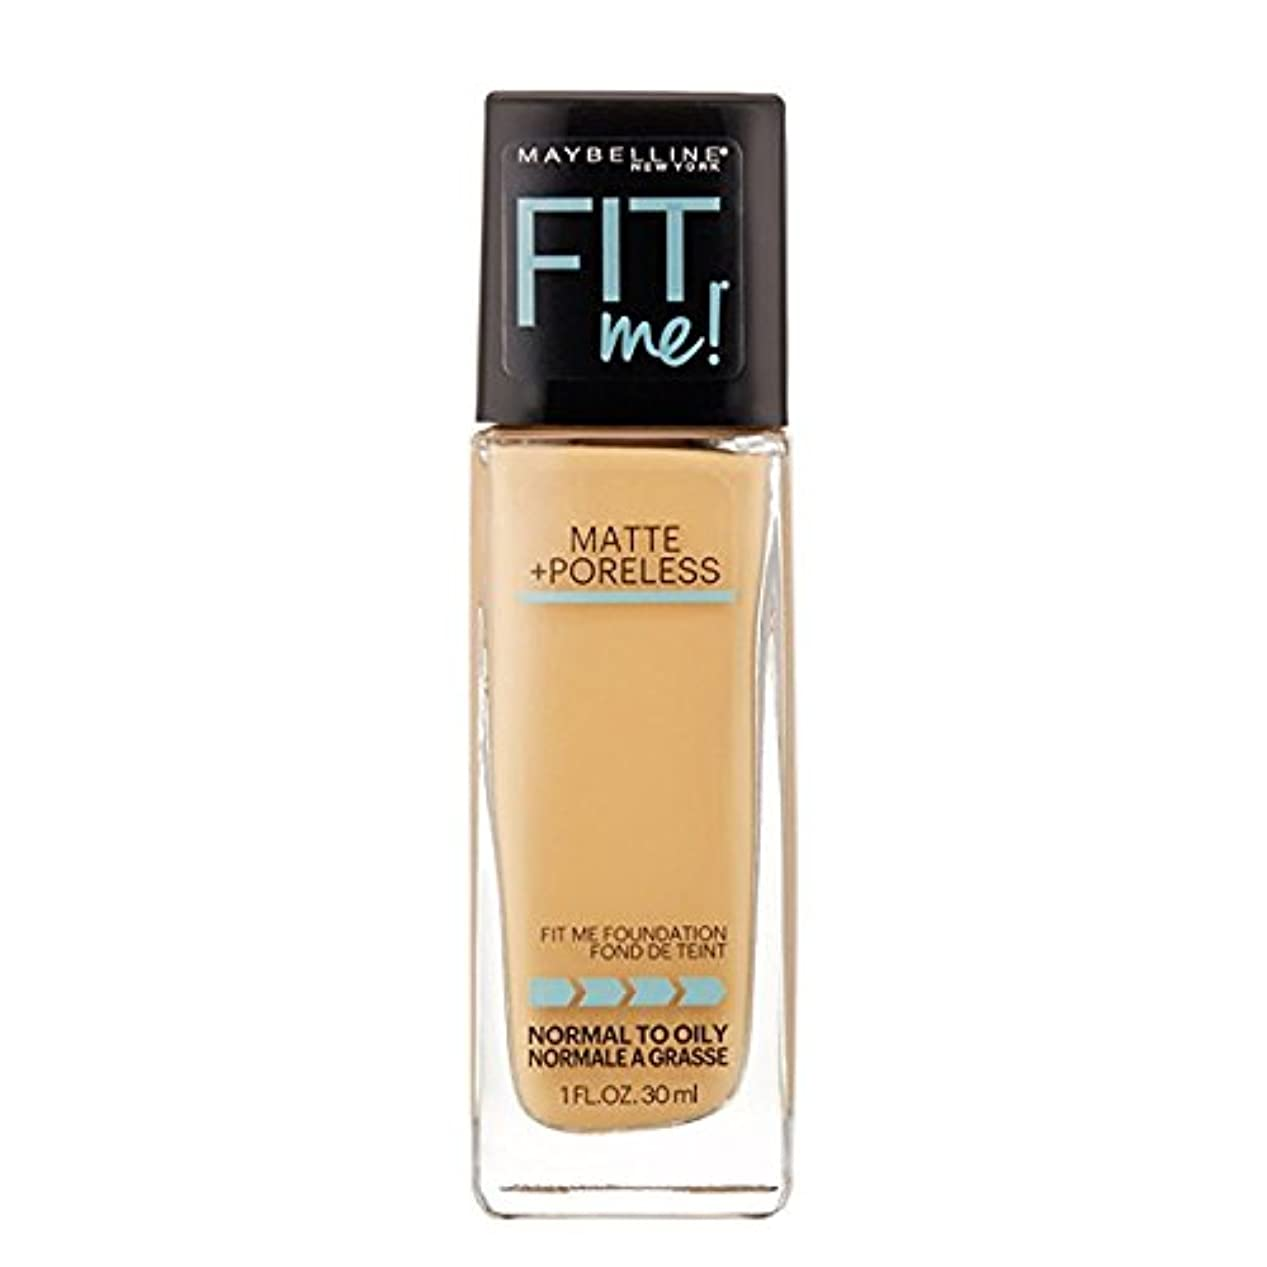 覚えている応答評価可能(6 Pack) MAYBELLINE Fit Me! Matte + Poreless Foundation - Natural Beige 220 (並行輸入品)